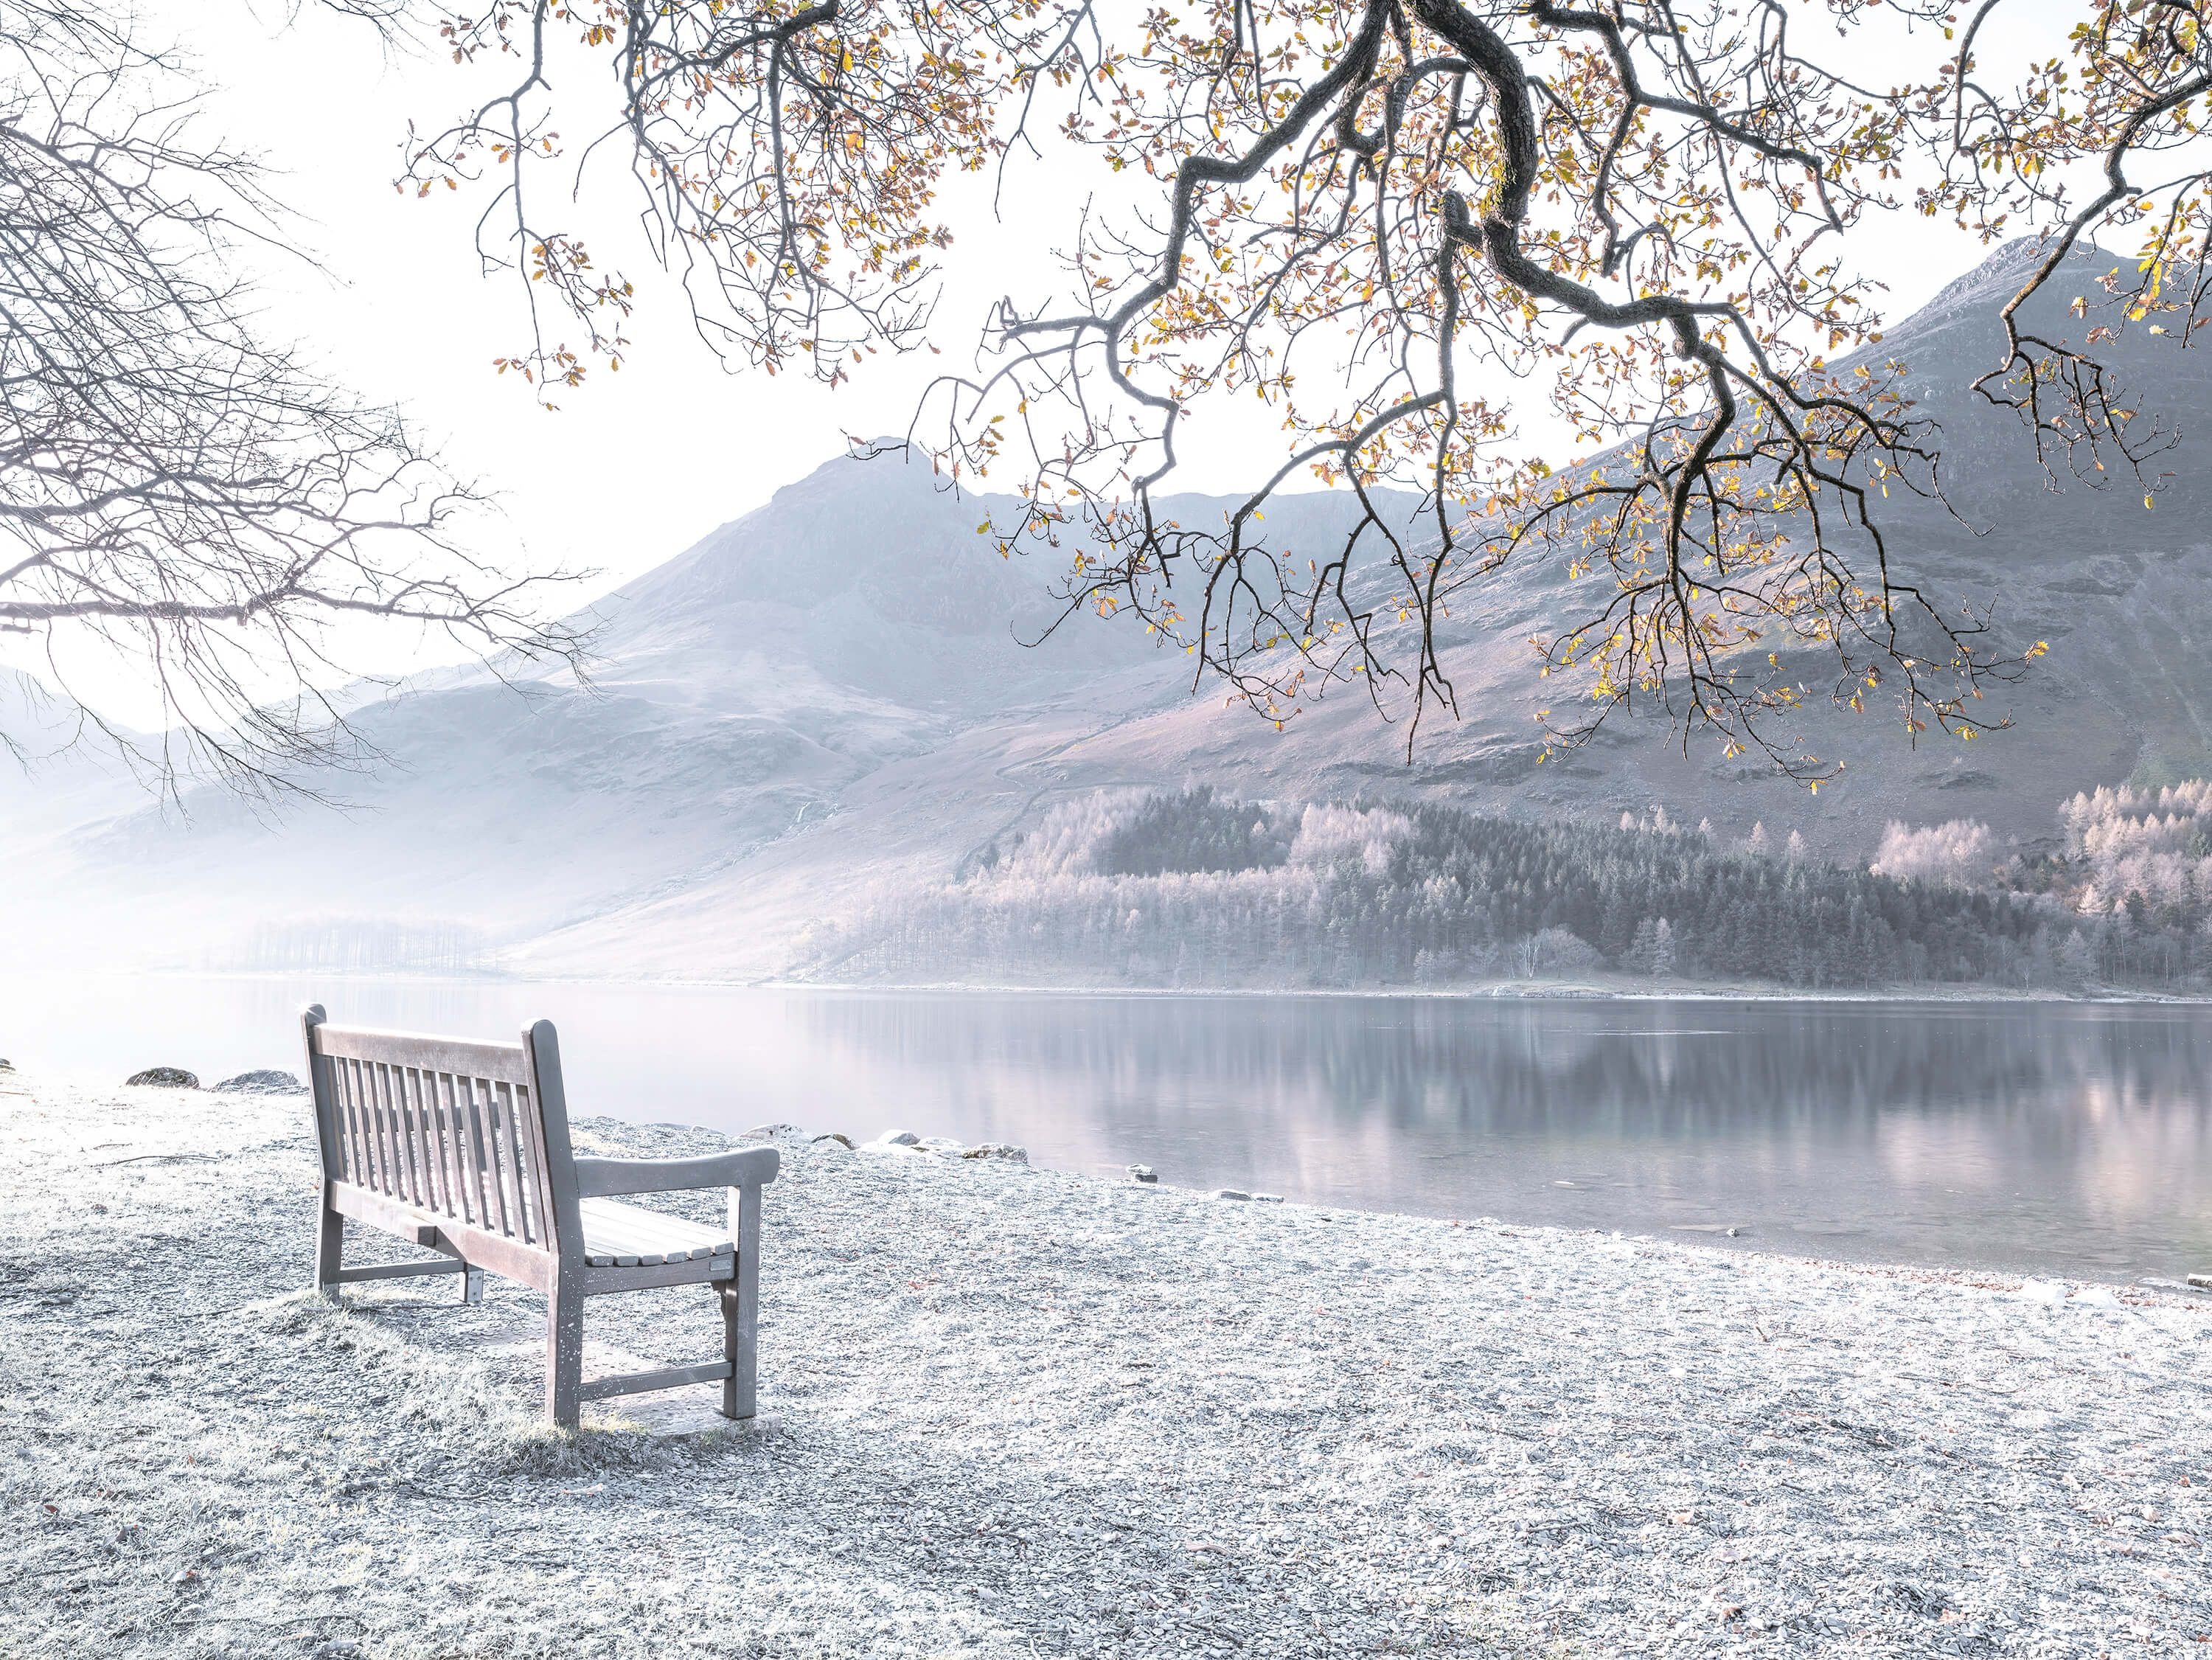 Bench by a quiet lake